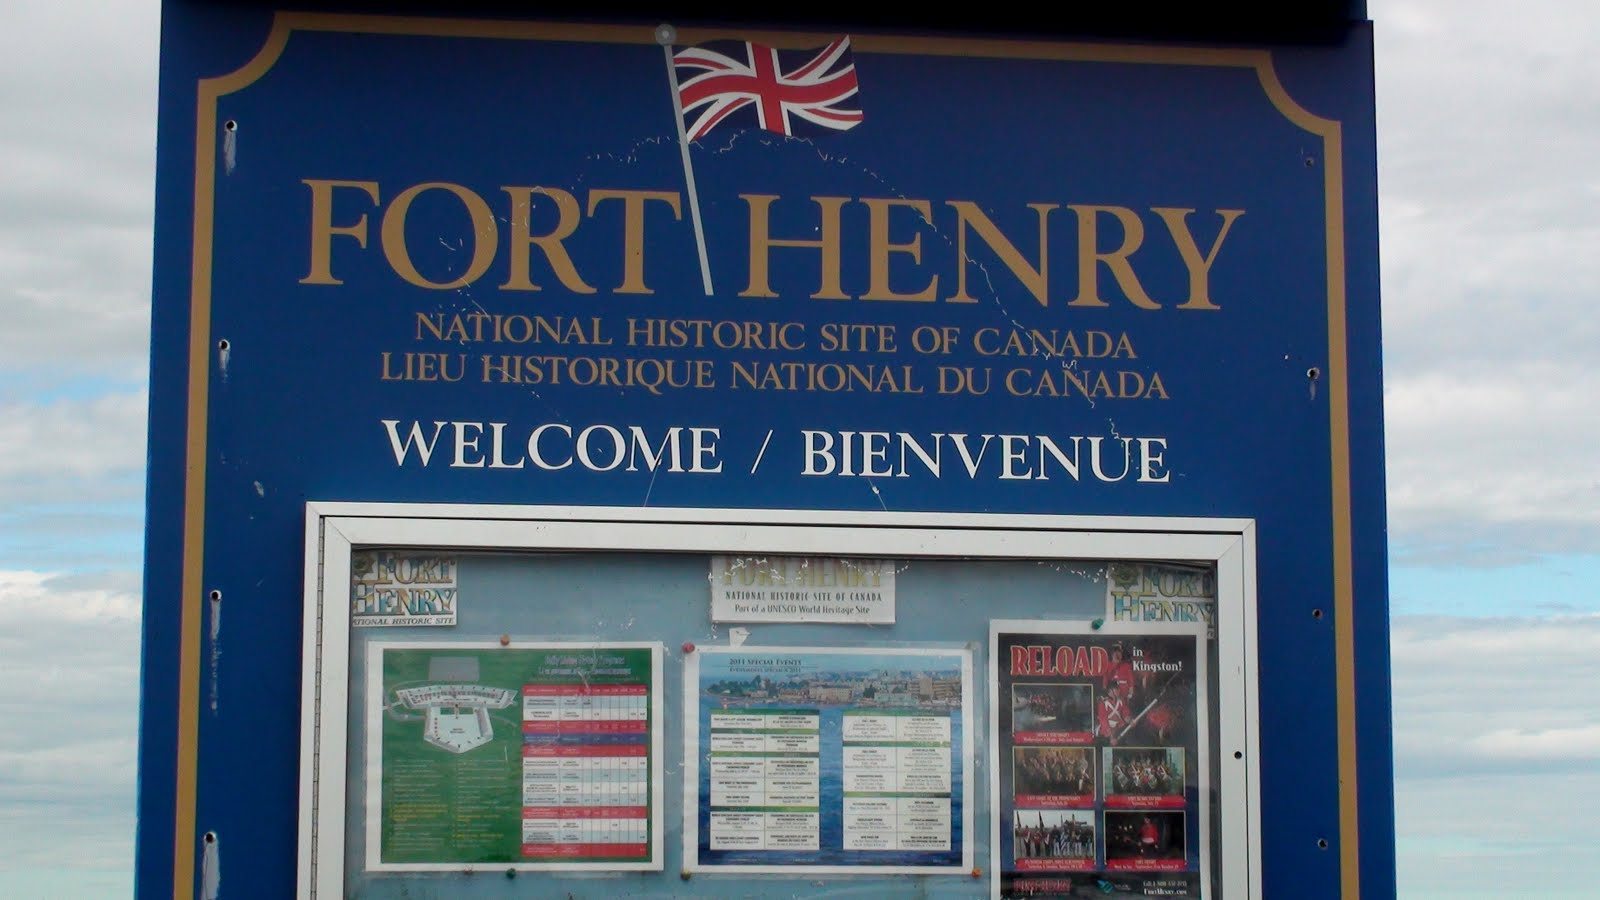 Sign of Fort Henry